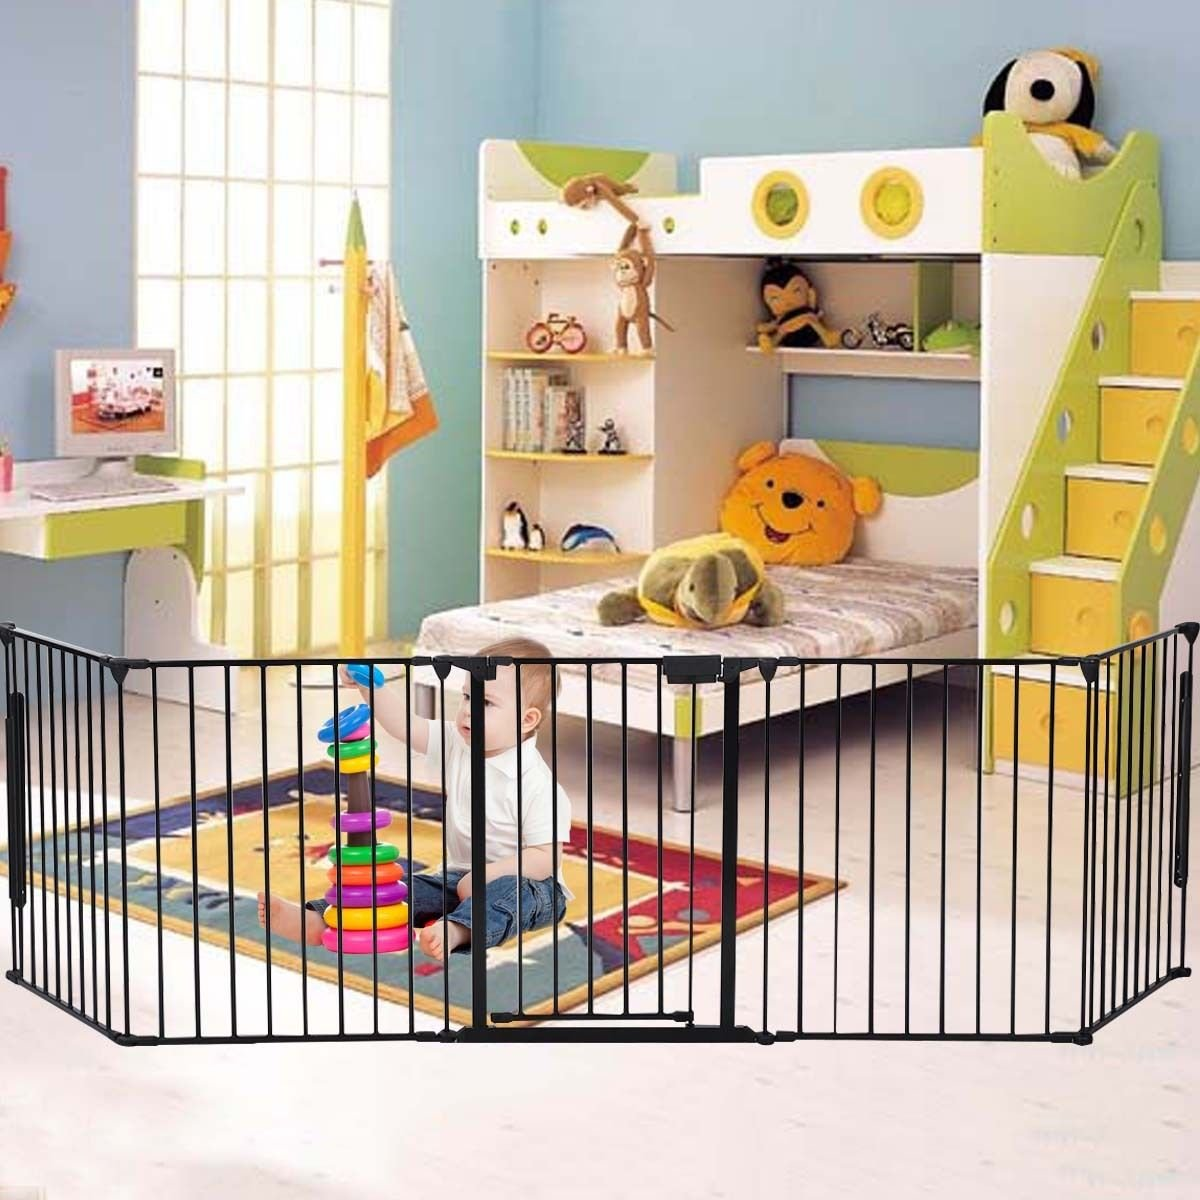 Delightful Baby Fireplace Gate Part - 12: Amazon.com : HPD Fireplace Fence Baby Safety Fence Hearth Gate BBQ Metal  Fire Gate Pet Dog Cat : Baby